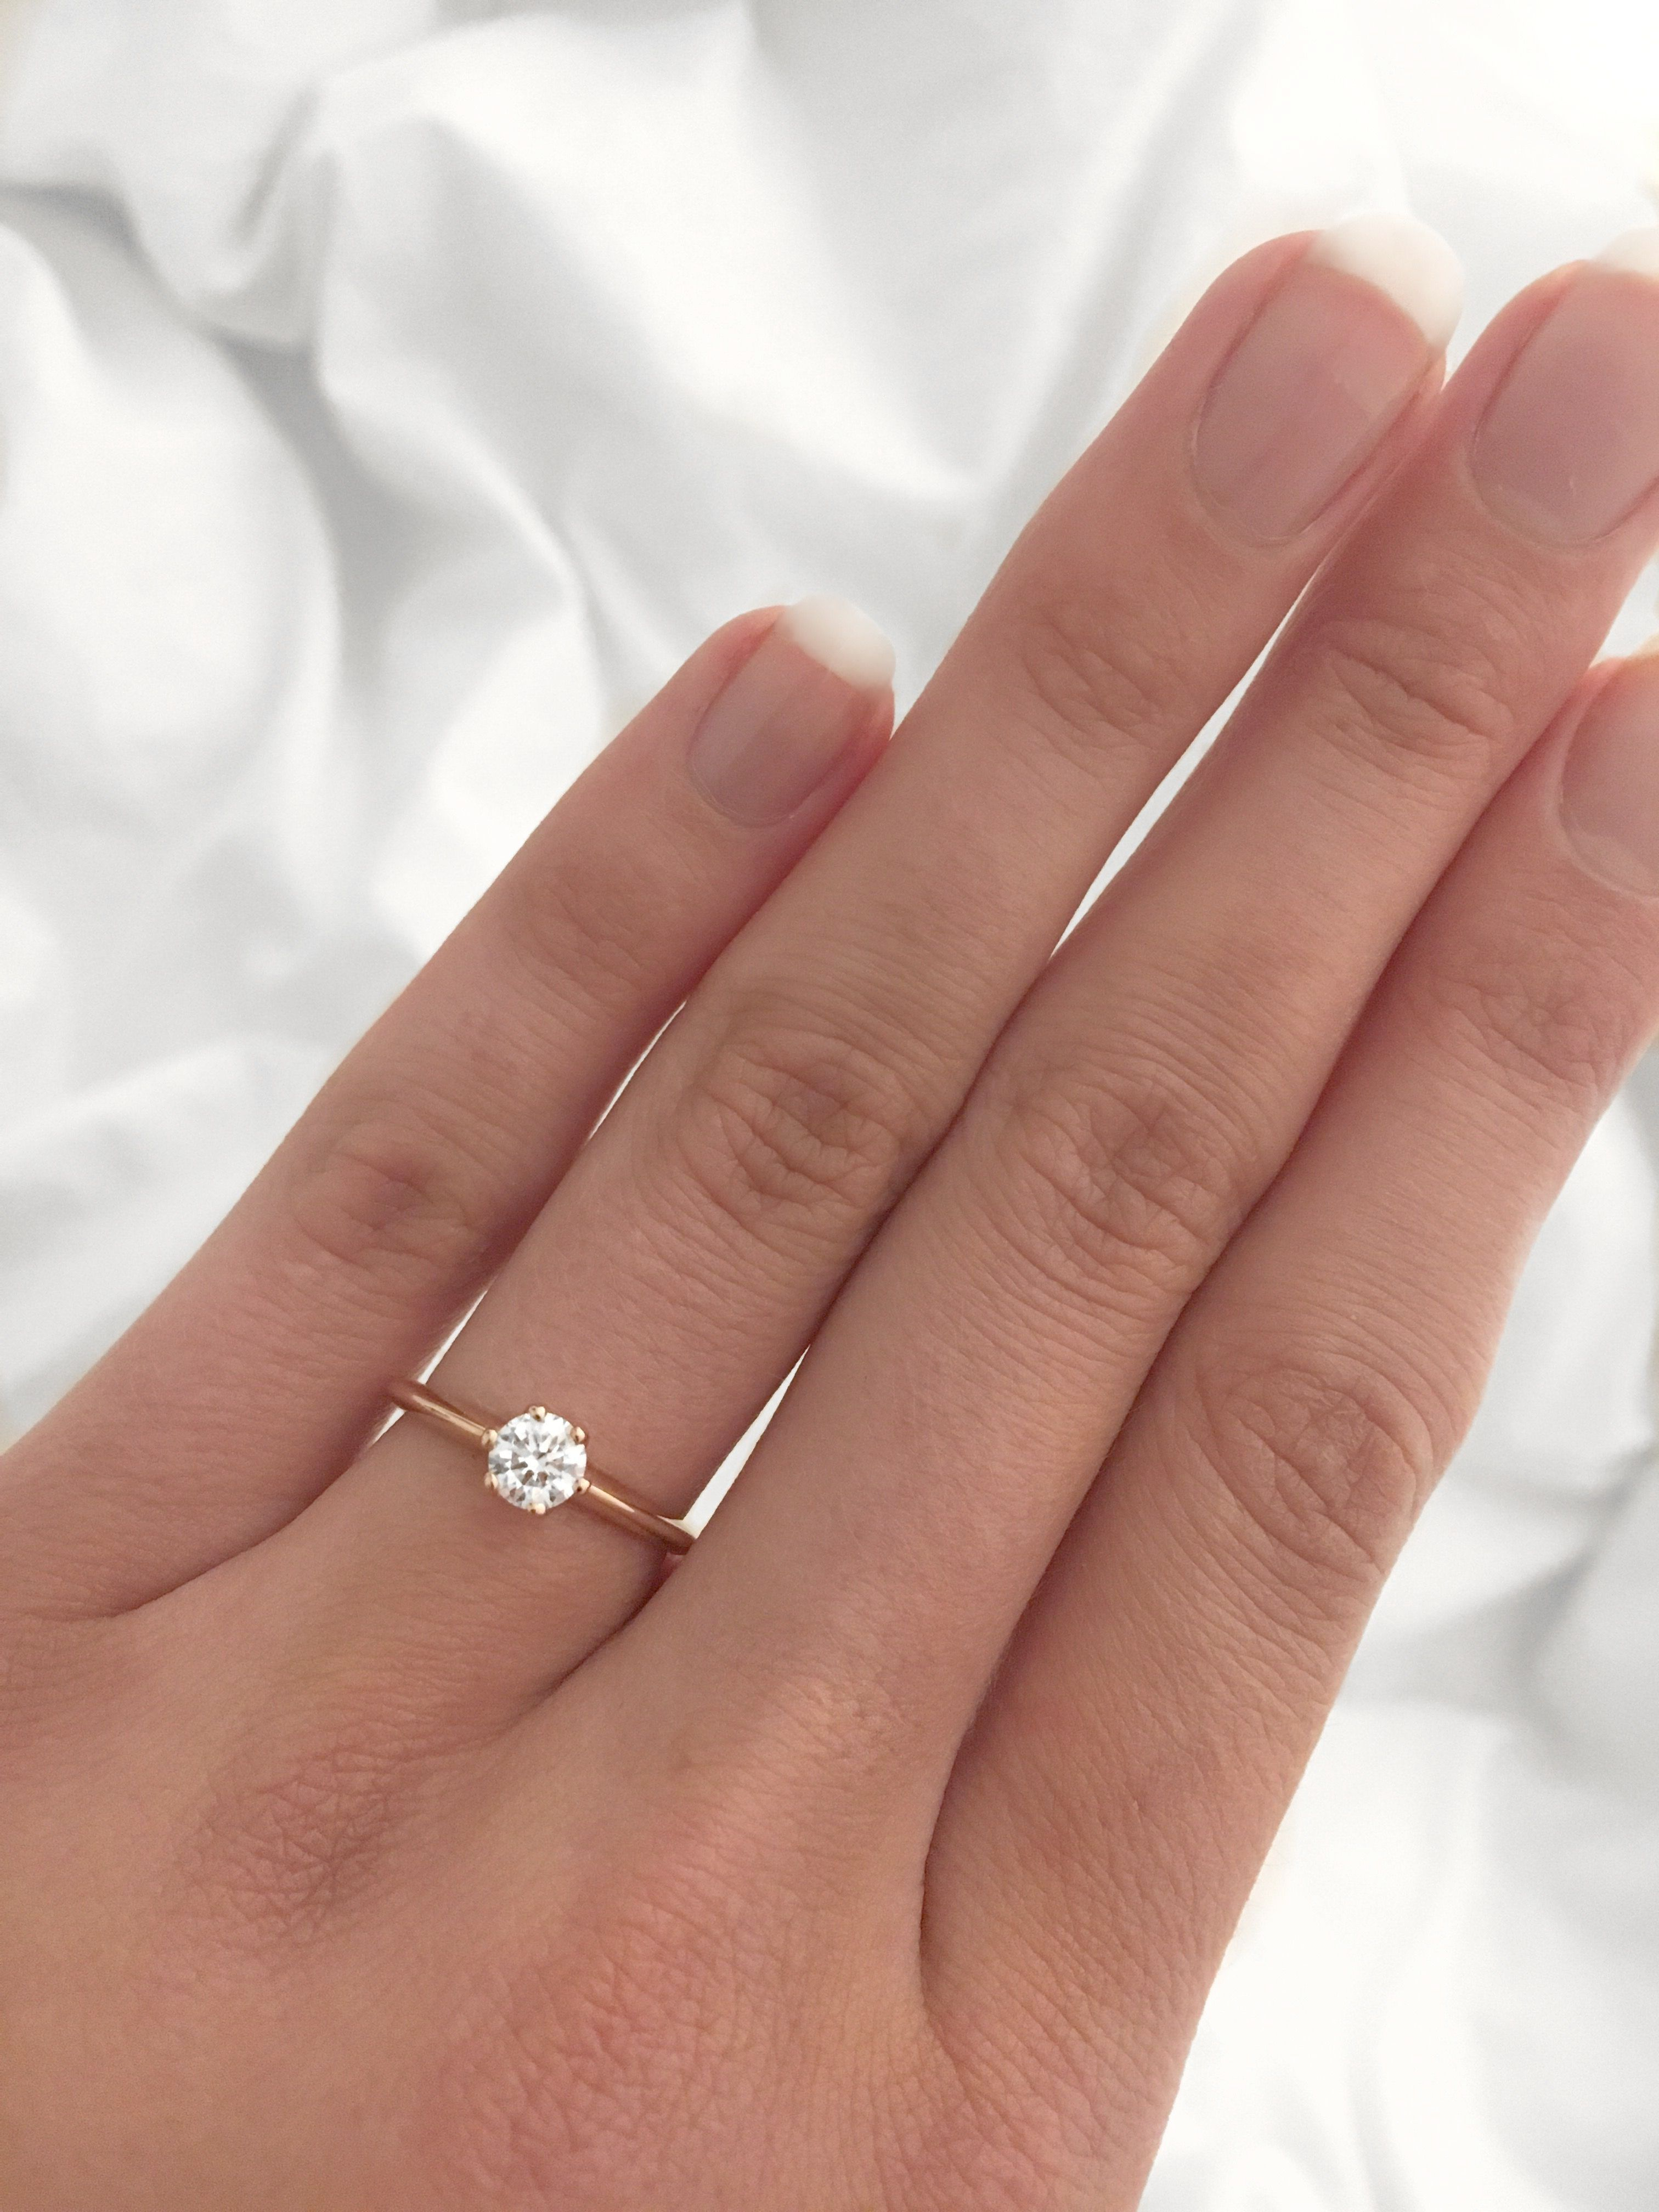 14k Yellow Gold Men S And Women S Plain Wedding Bands 3mm Comfort Fit Light 6 Rose Engagement Ring Moissanite Engagement Ring White Gold Gold Rings Simple